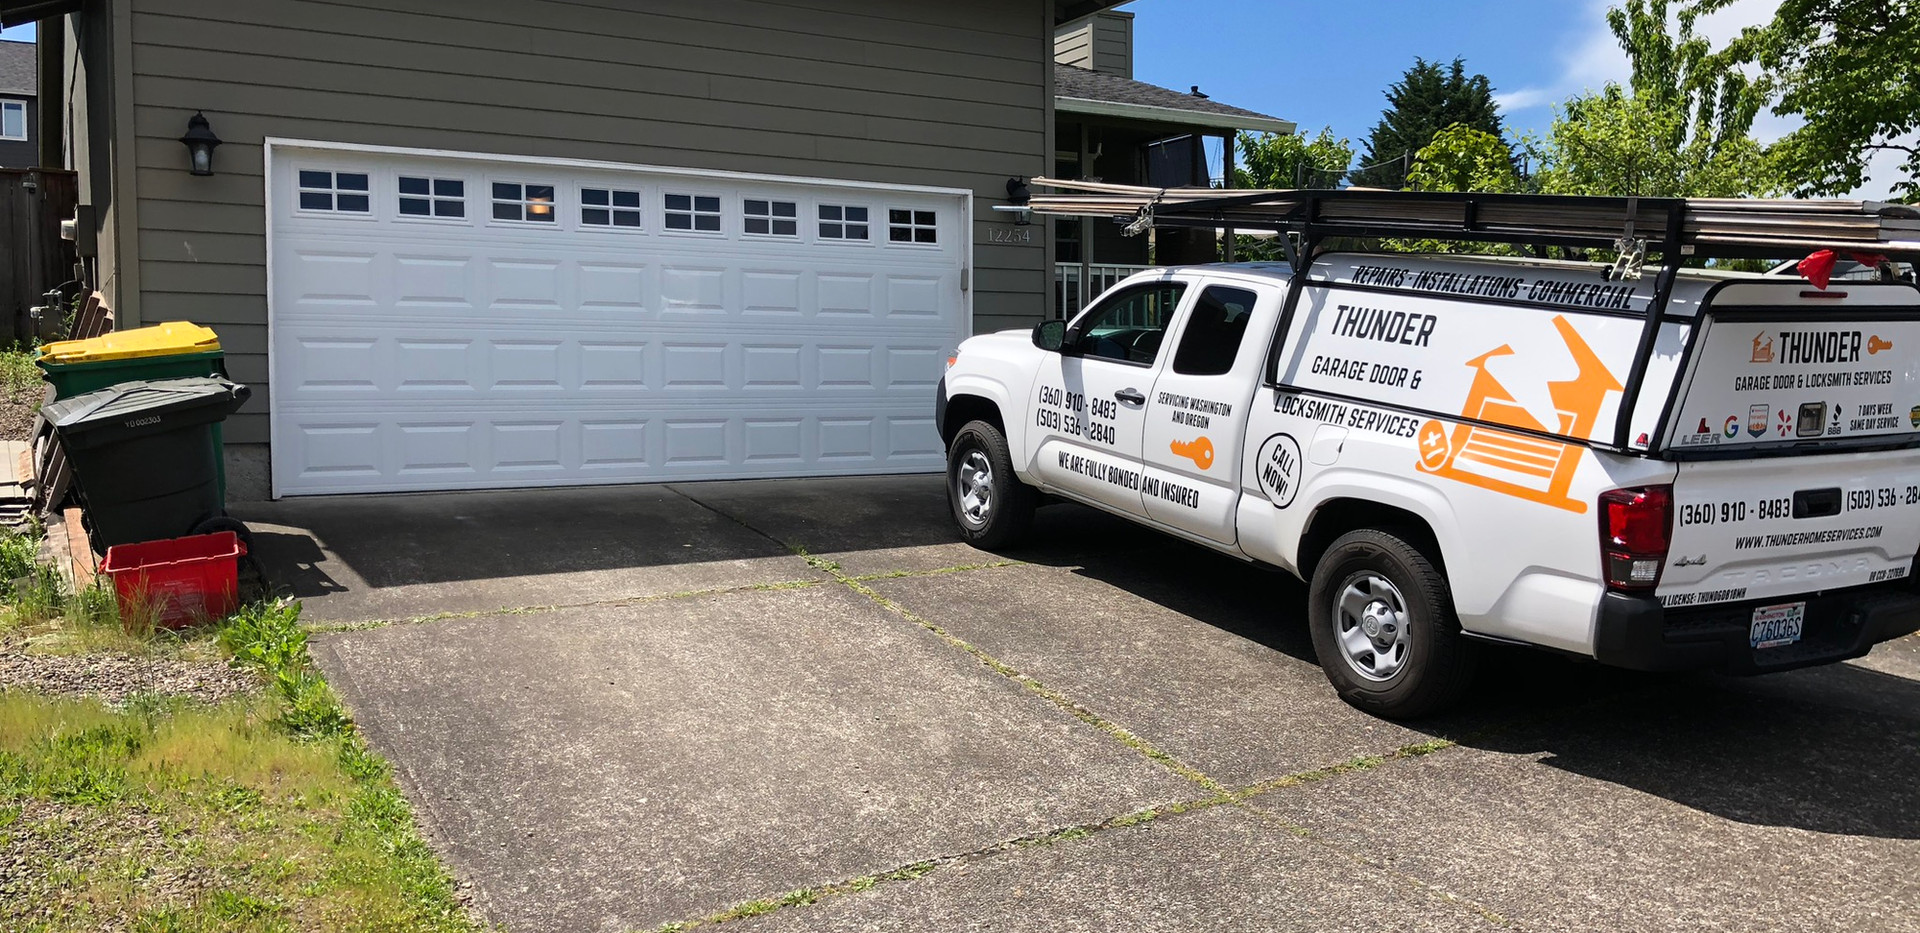 New garage door install in longview wa